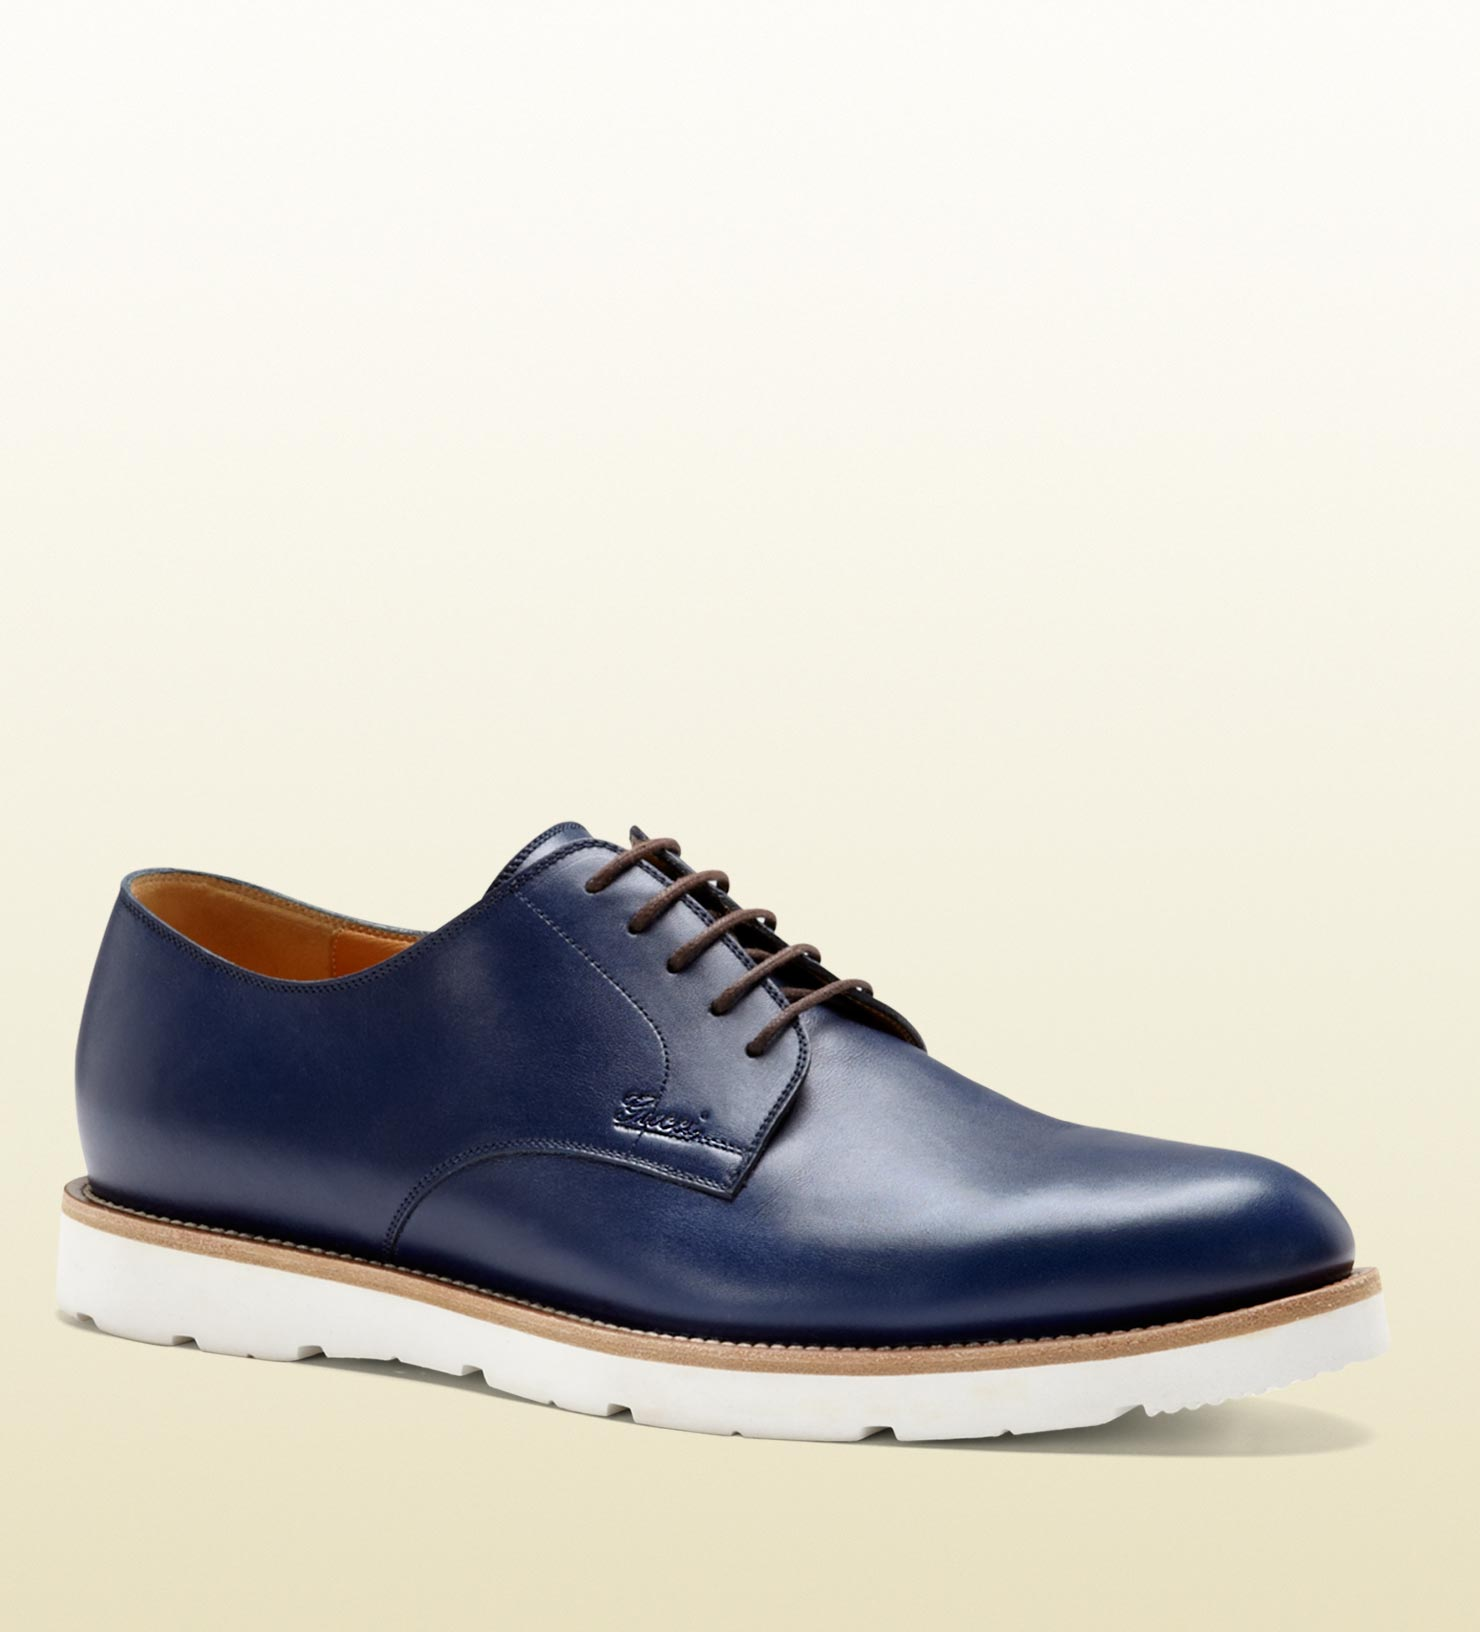 Lyst Gucci Blue Leather Laceup Shoe In Blue For Men